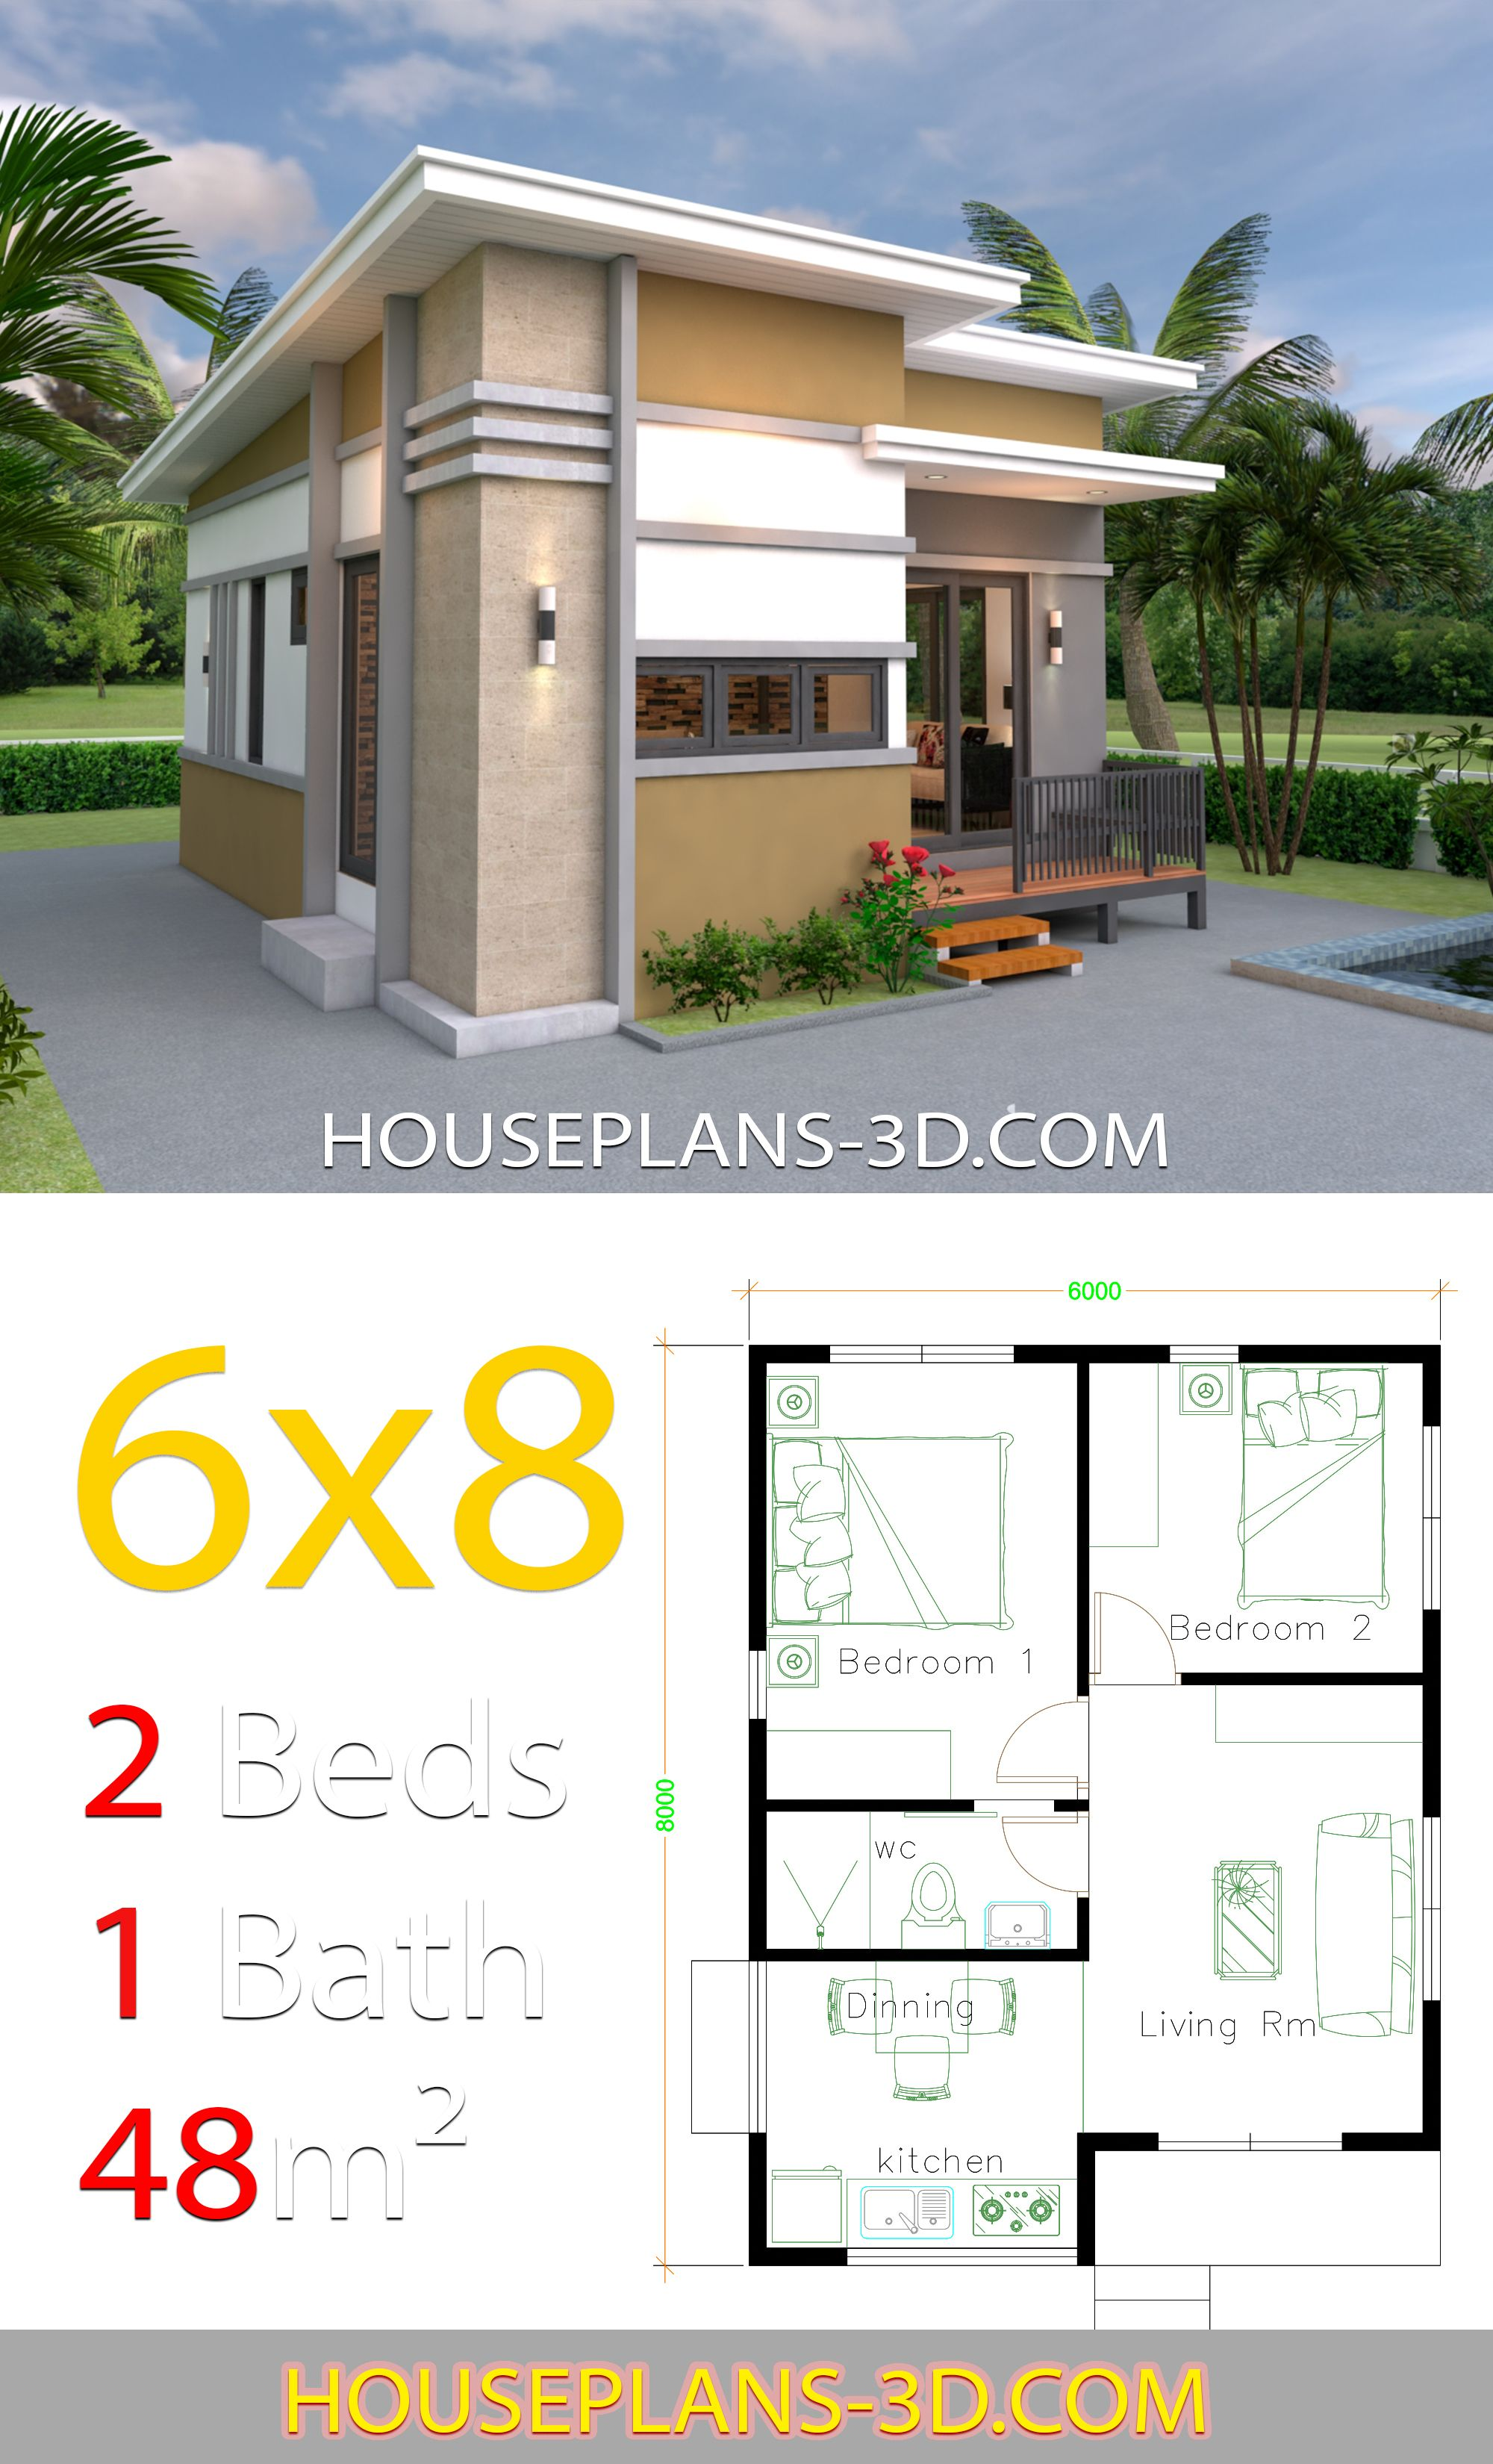 Small House Design Plans 6x8 With 2 Bedrooms House Plans 3d In 2020 Small House Design Plans Small House Layout House Plans